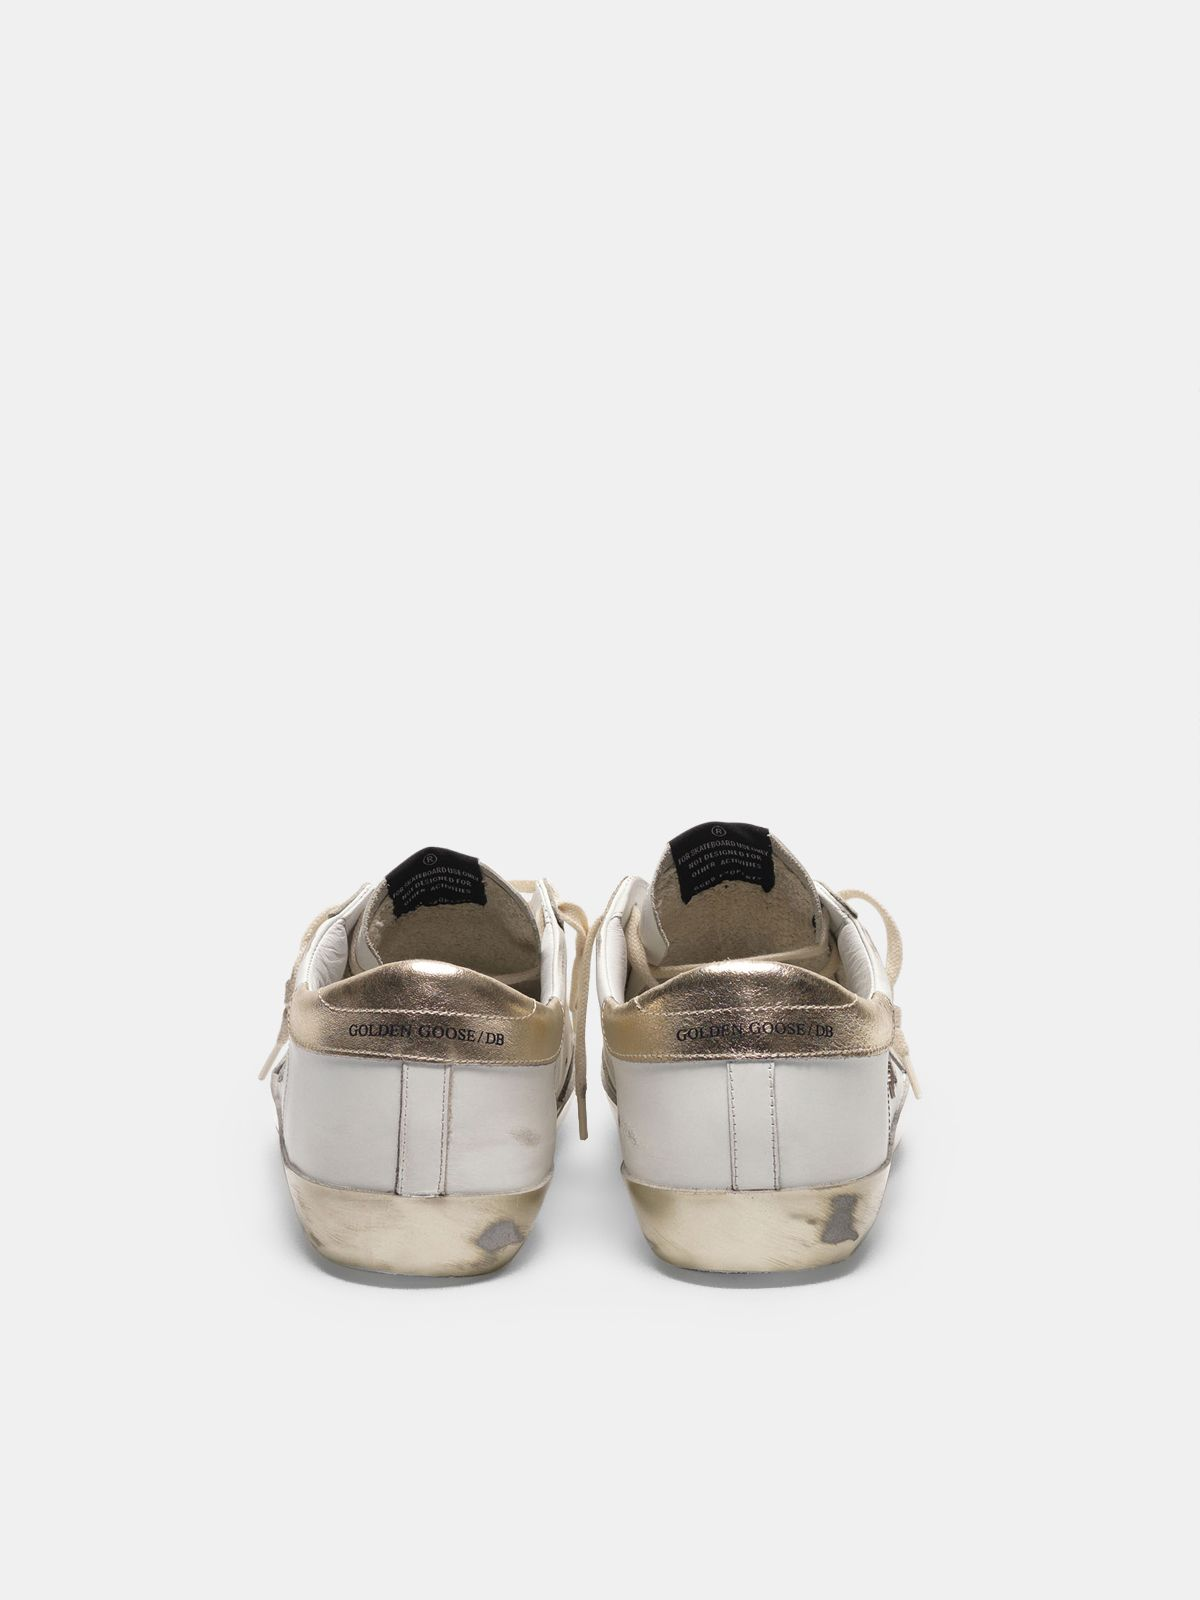 Golden Goose - Sneakers Super-Star con dettagli e foxing dorato in